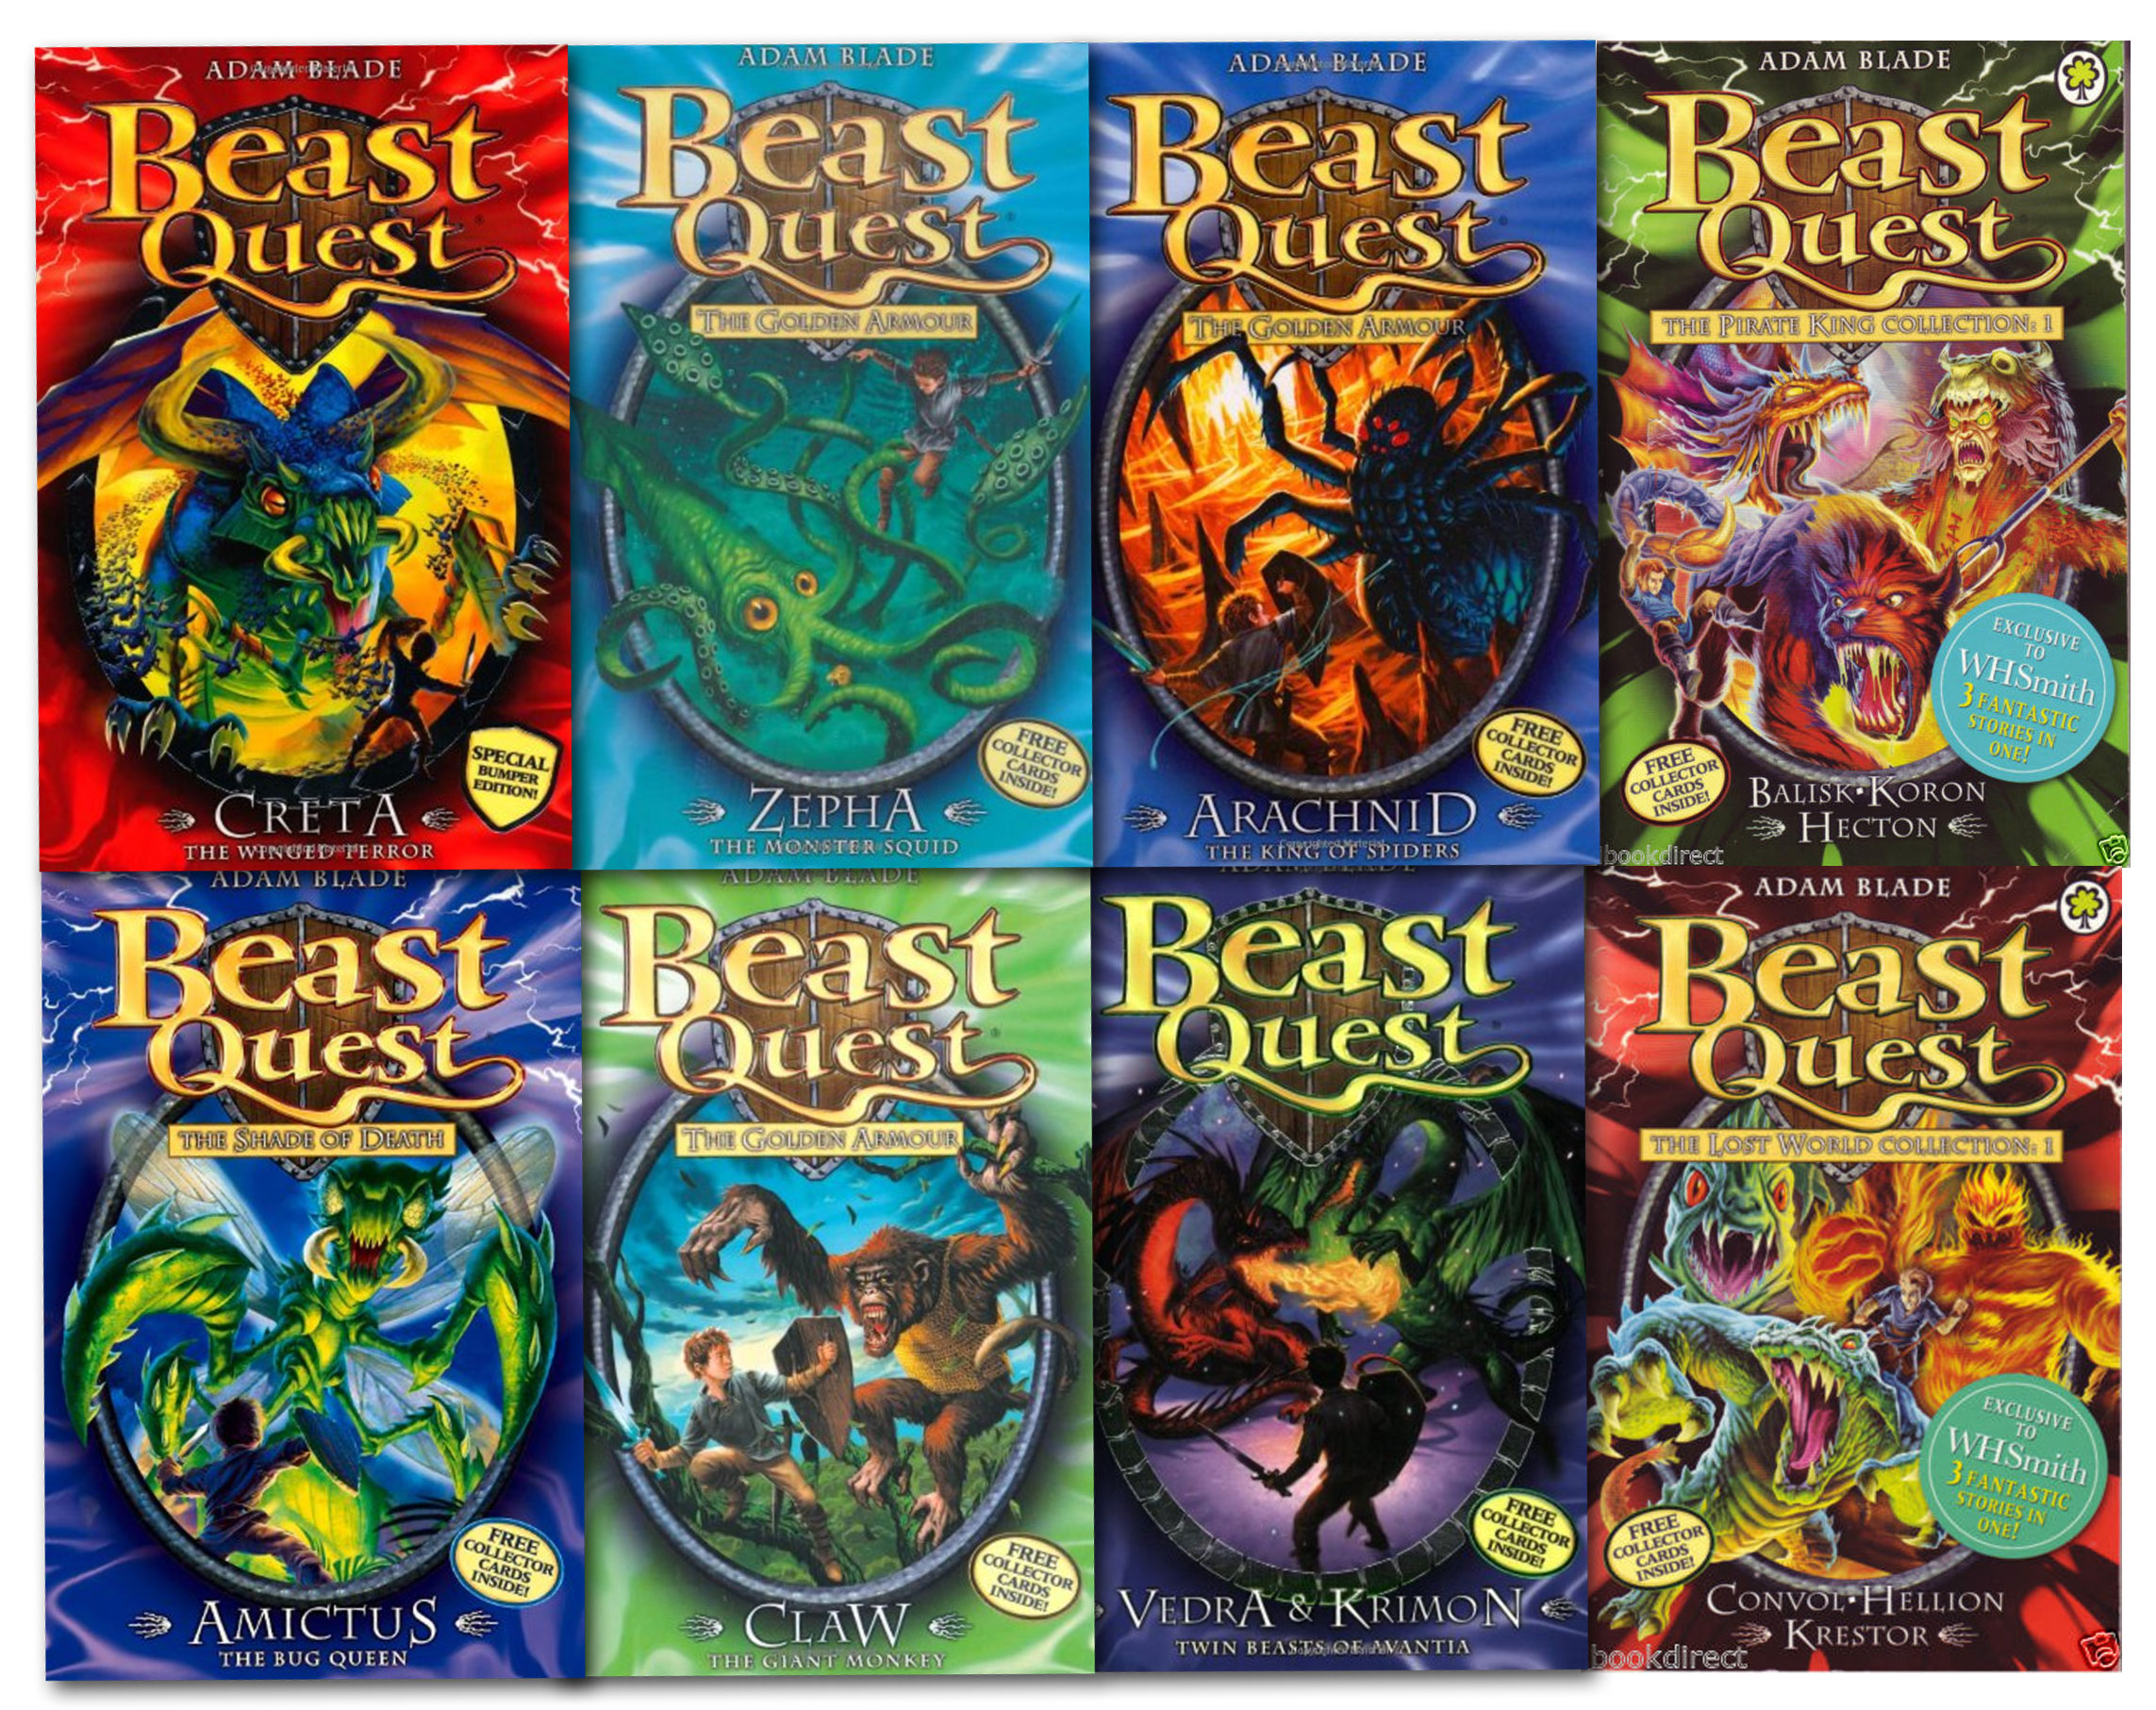 Beast quest special series collection 12 titles in 8 books set by adam